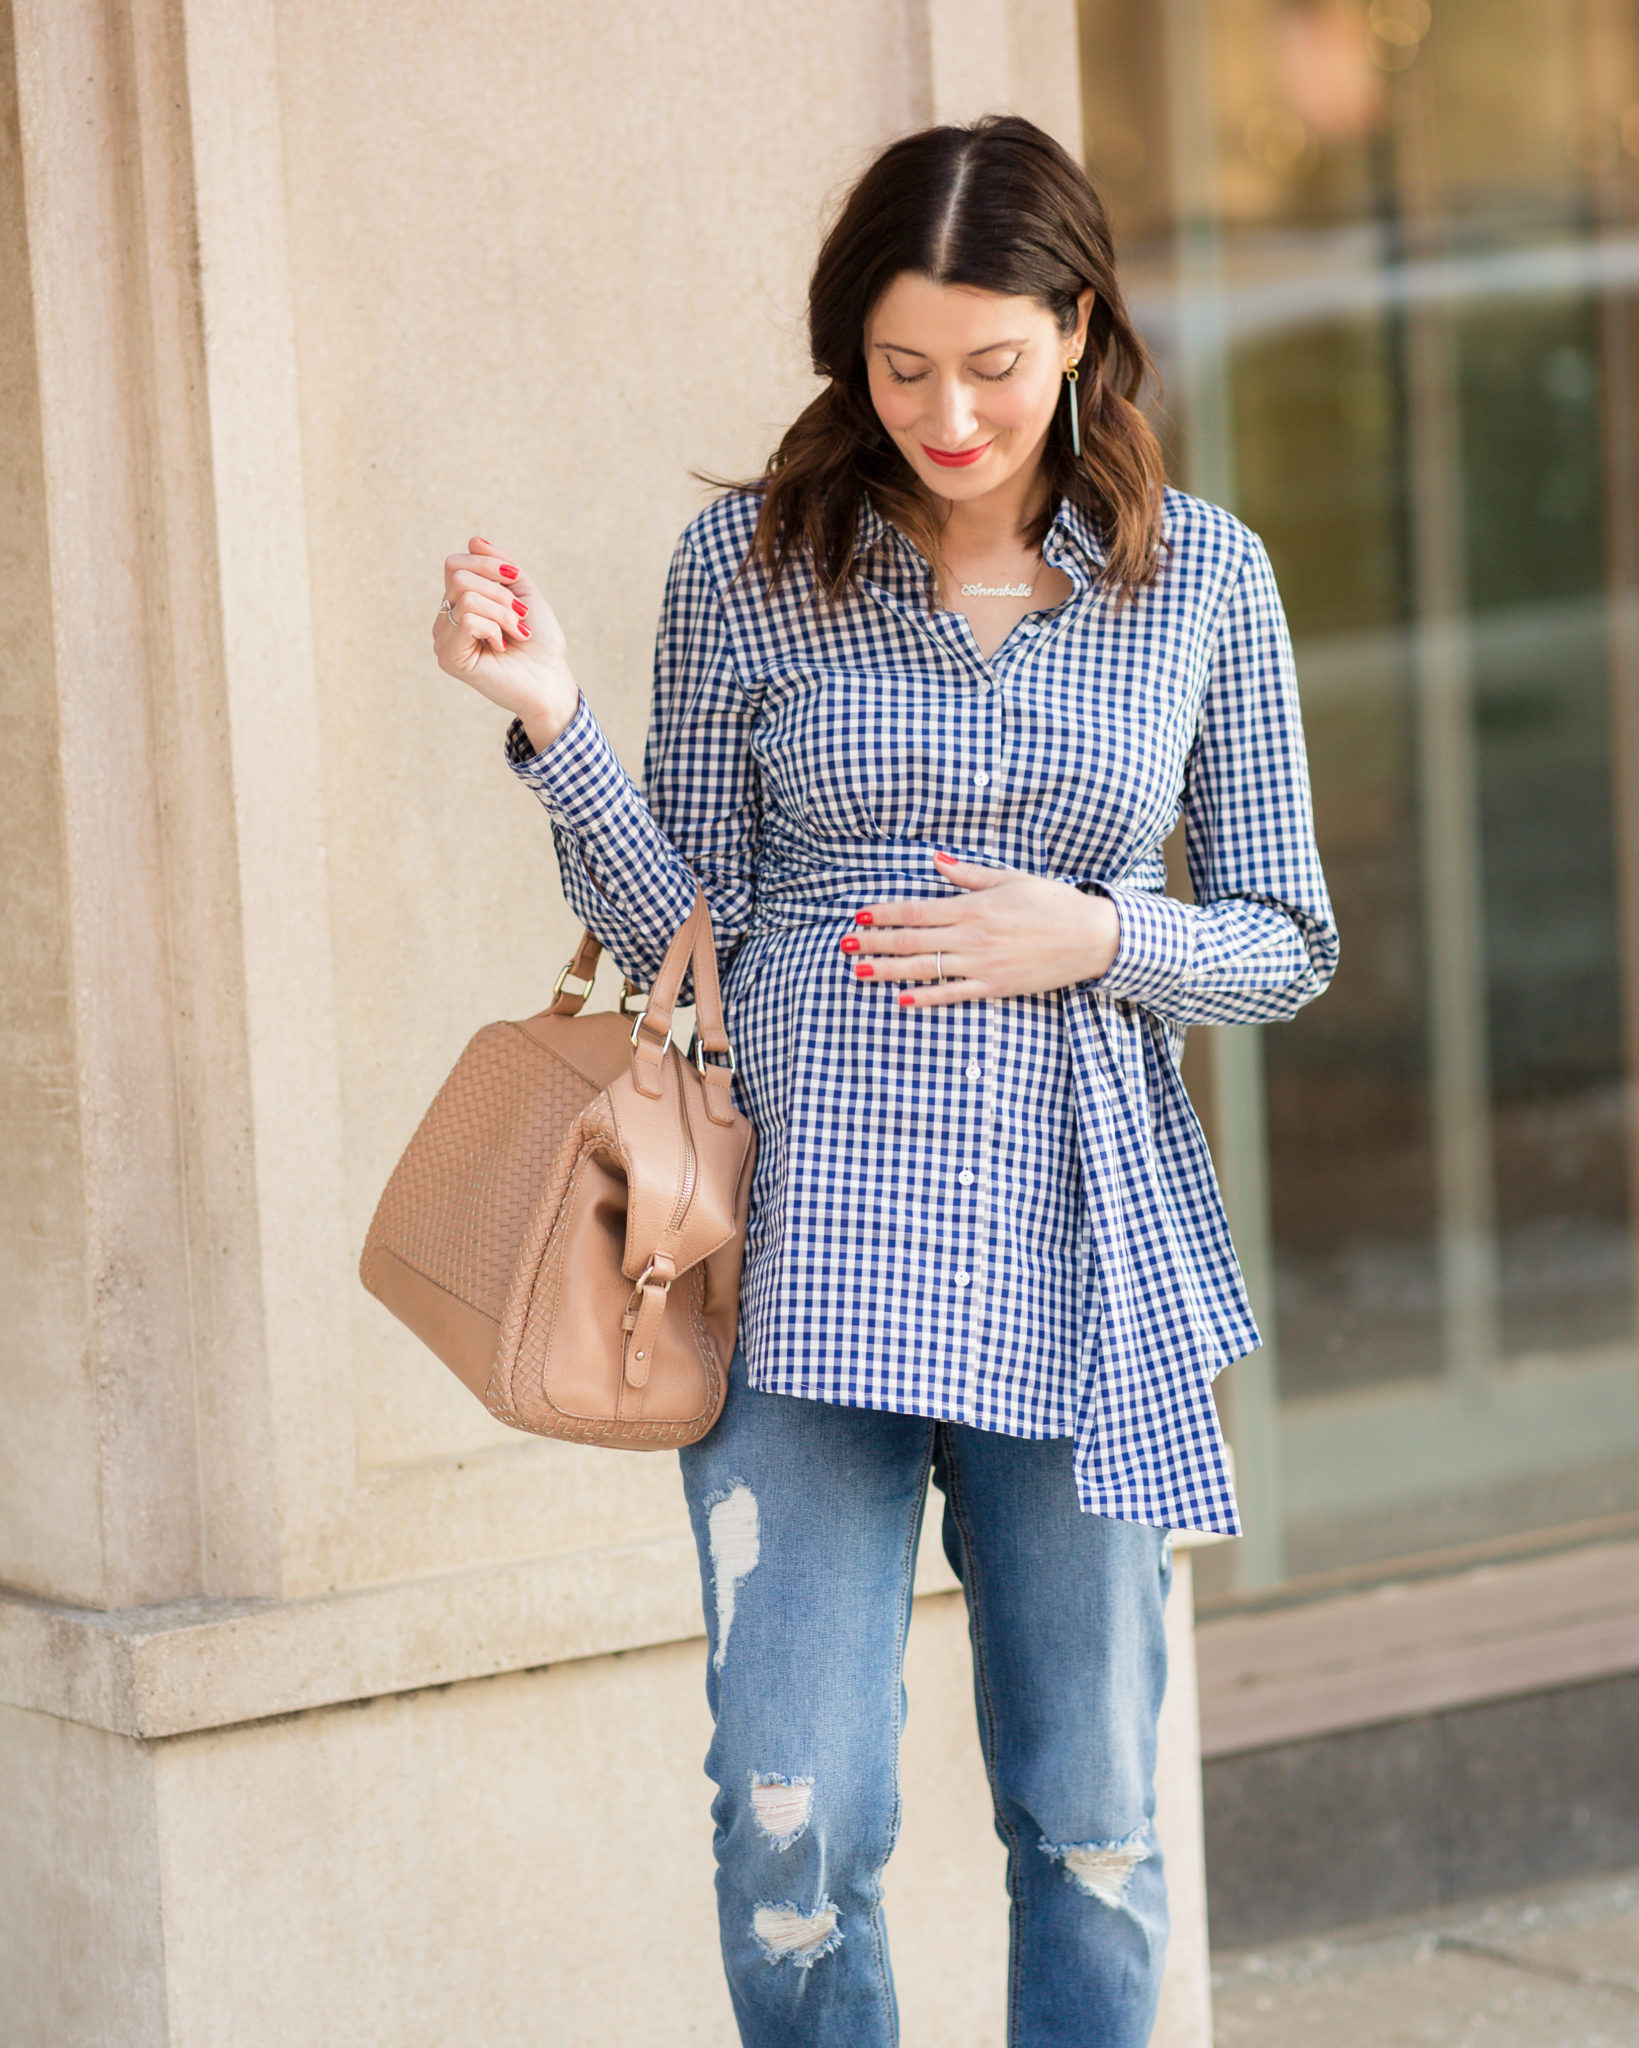 versatile maternity tops for during and after pregnancy